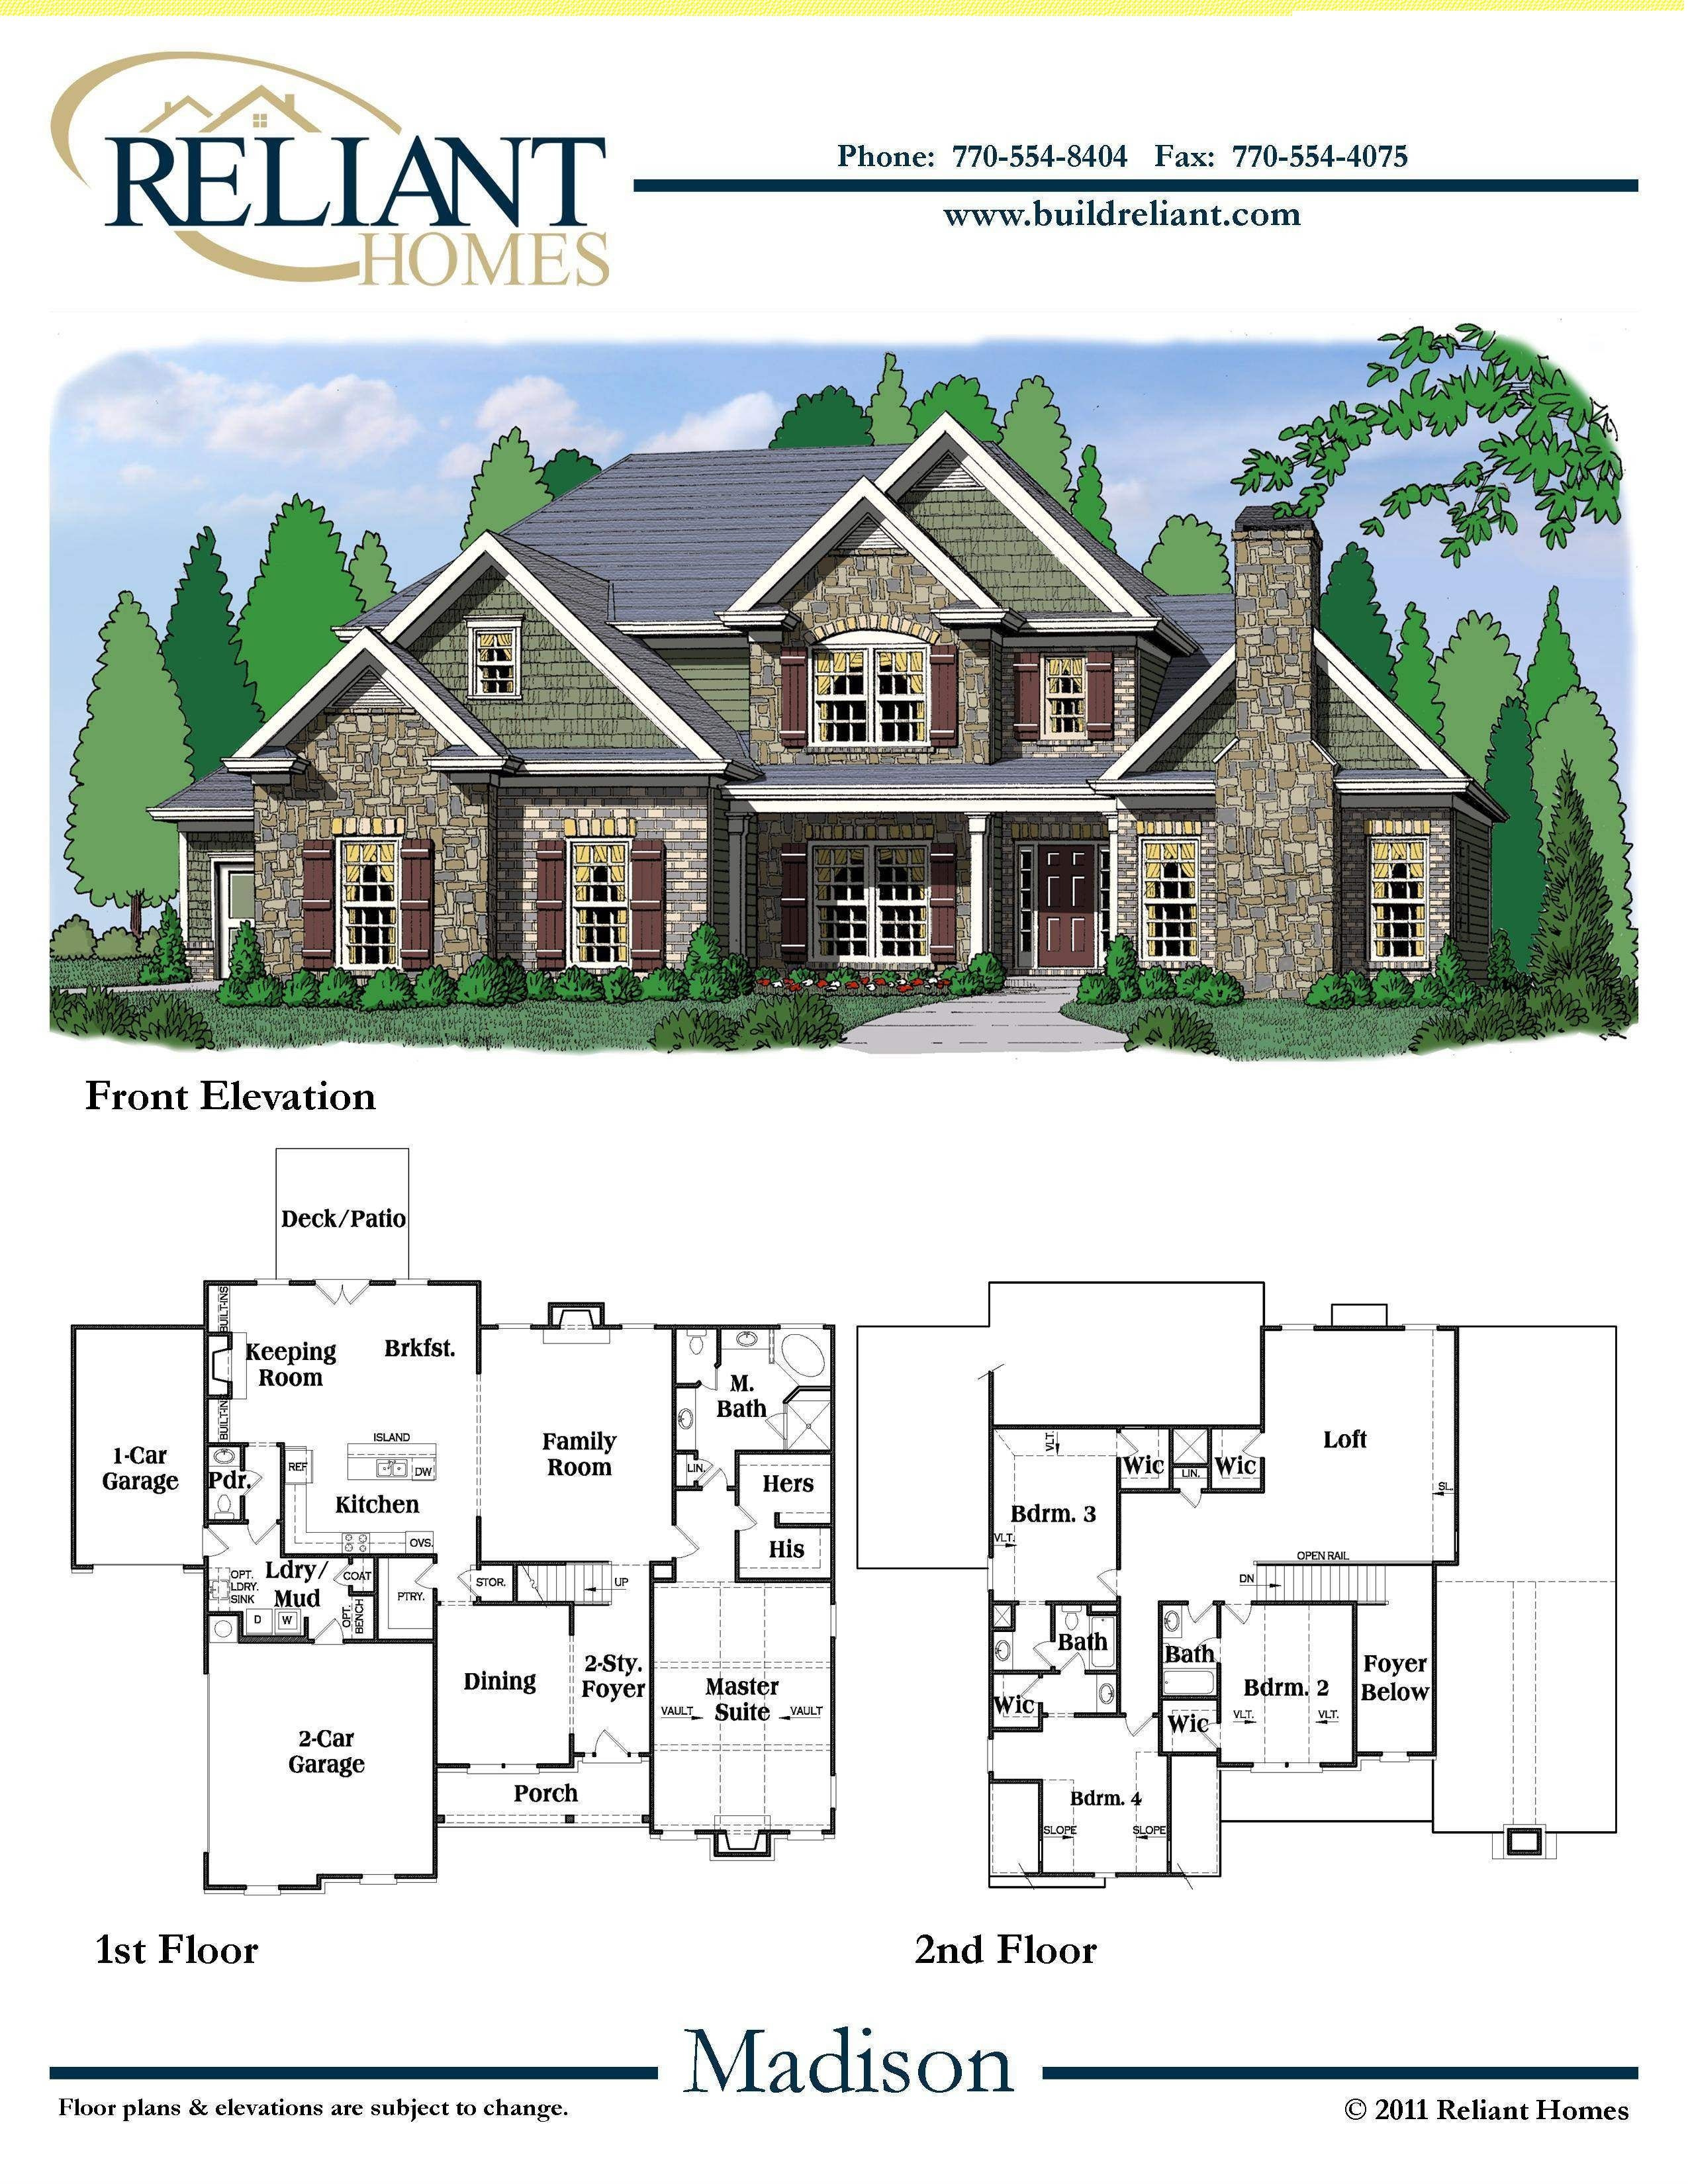 House Plans for Sale New Reliant Homes the Madison Plan Floor Plans